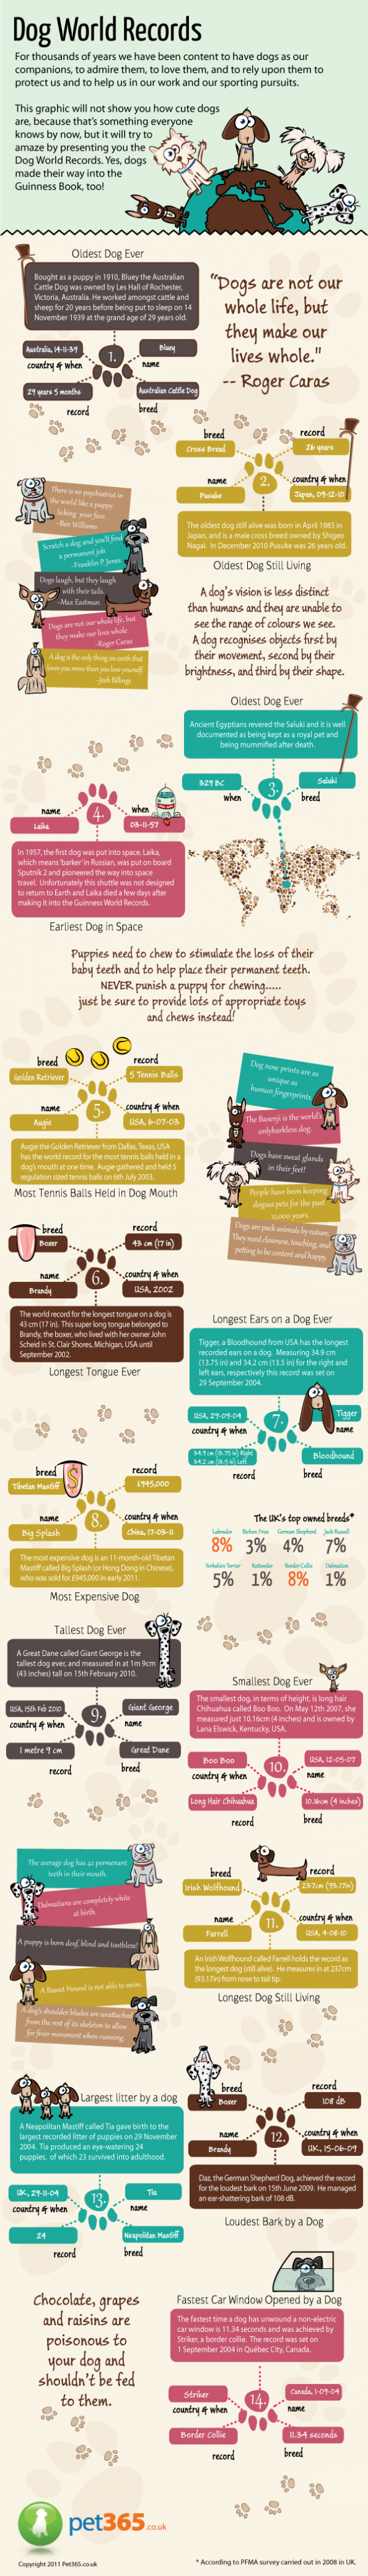 Dog World Records Infographic